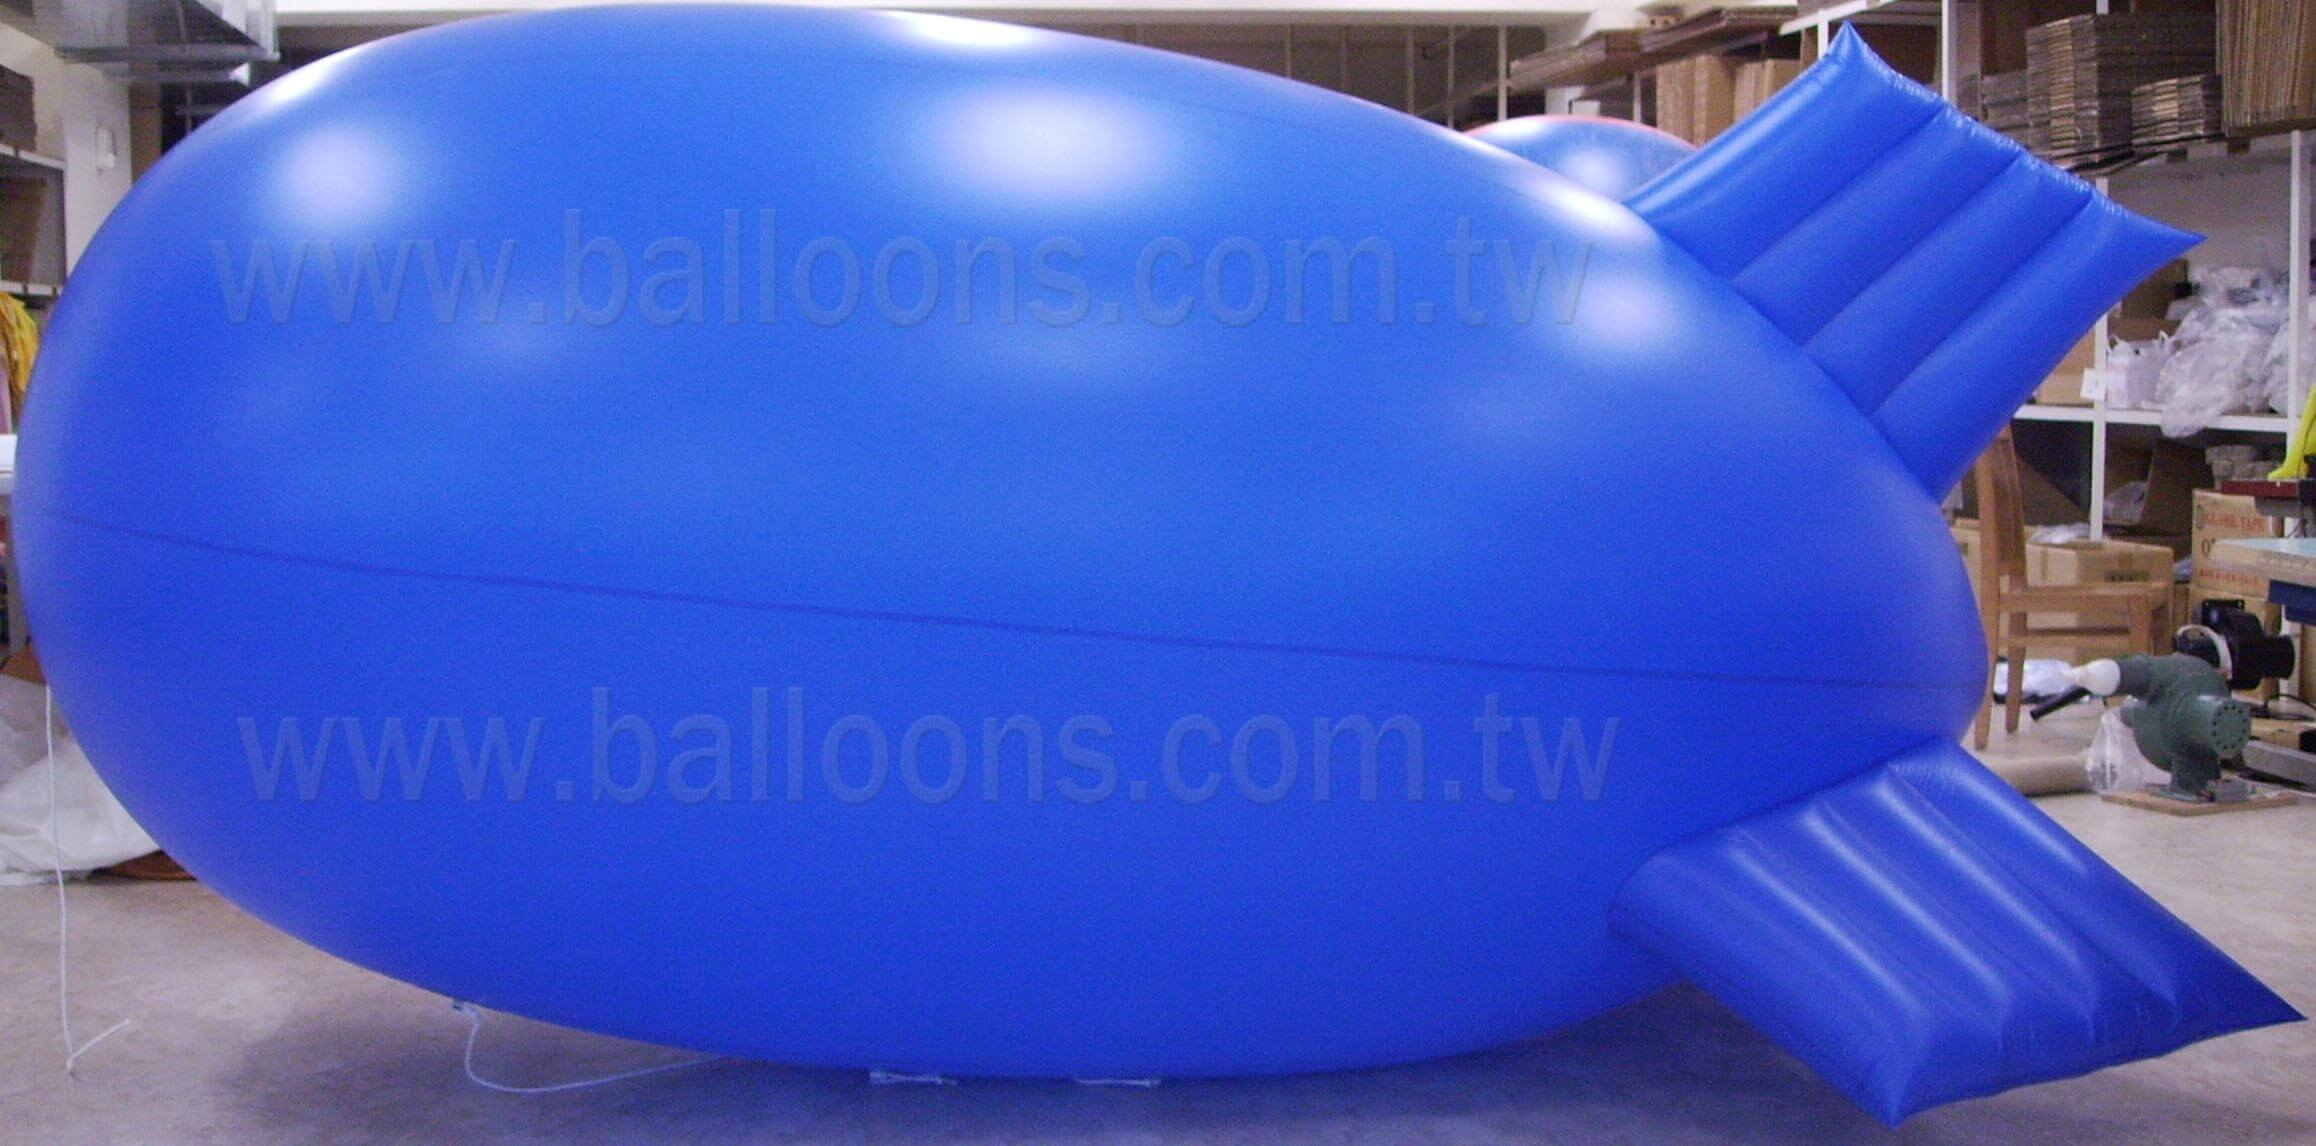 10ft long standard shape of inflatable fins blimp balloon翔奕標準形狀的軟翅飛船空飄氣球